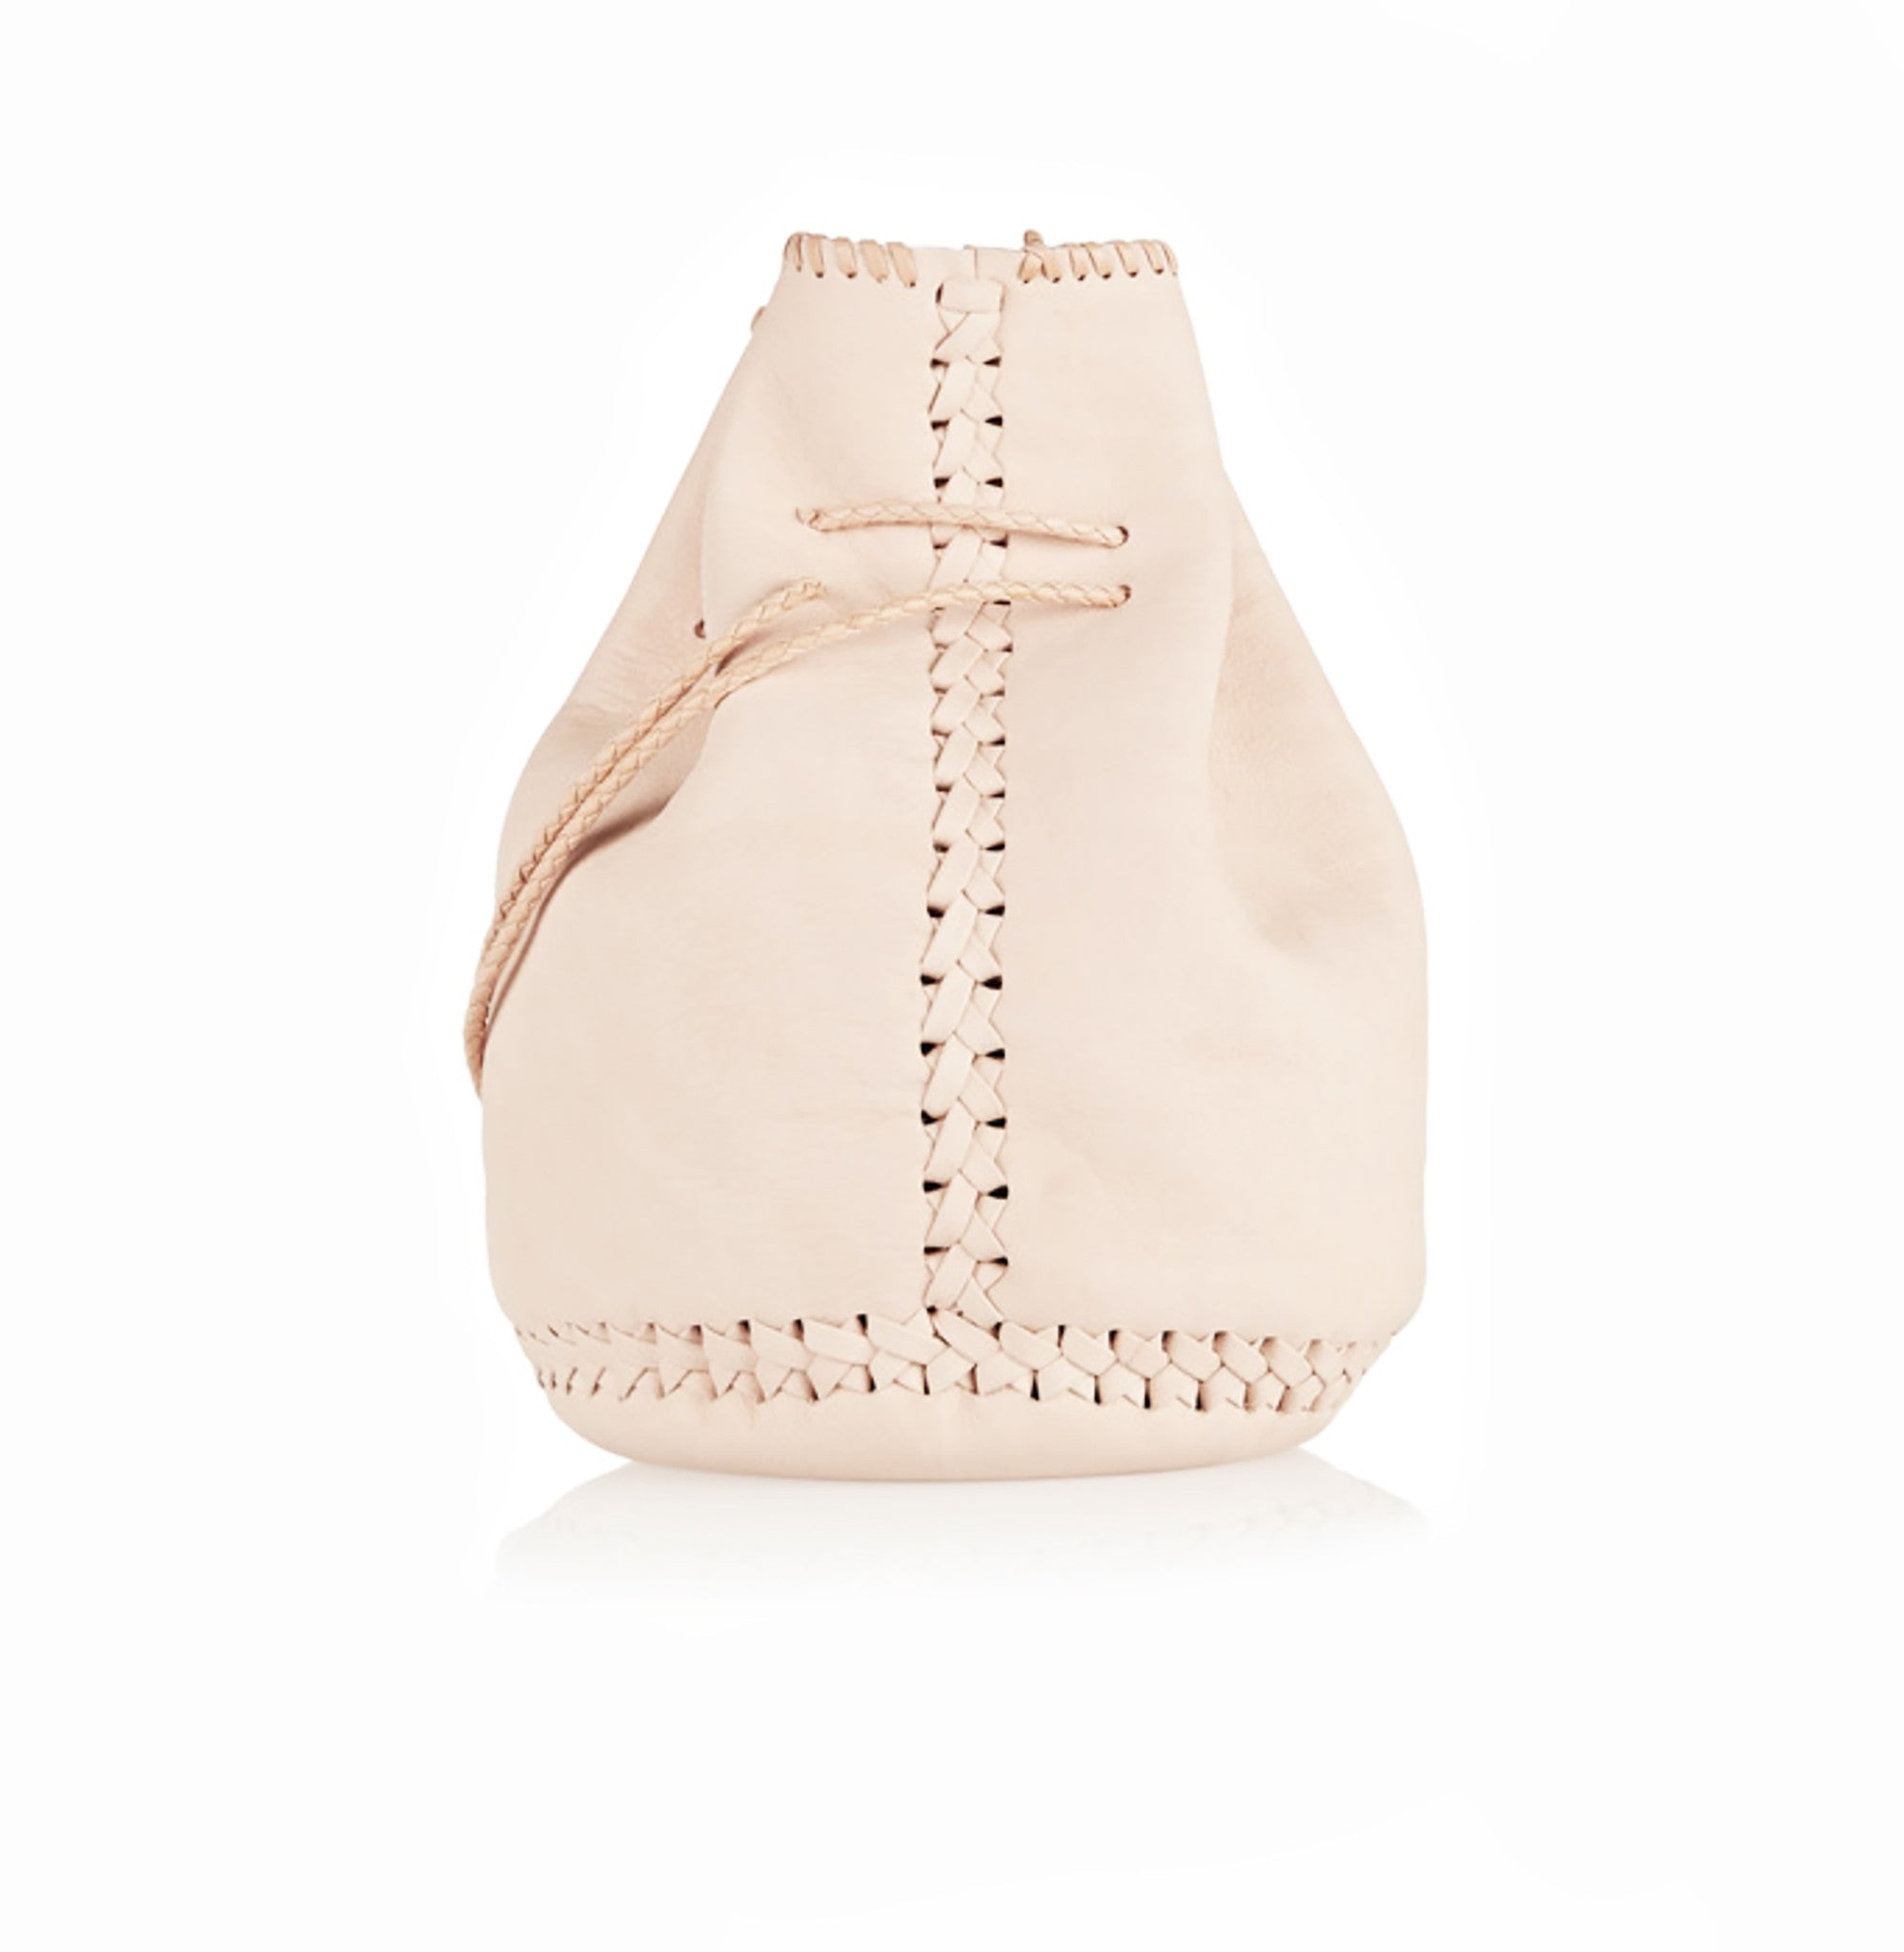 Natural Pink Leather Whipstitch Bullet Bag Wendy Nichol Handmade in NYC Leather Bucket Handbag Natural Pink